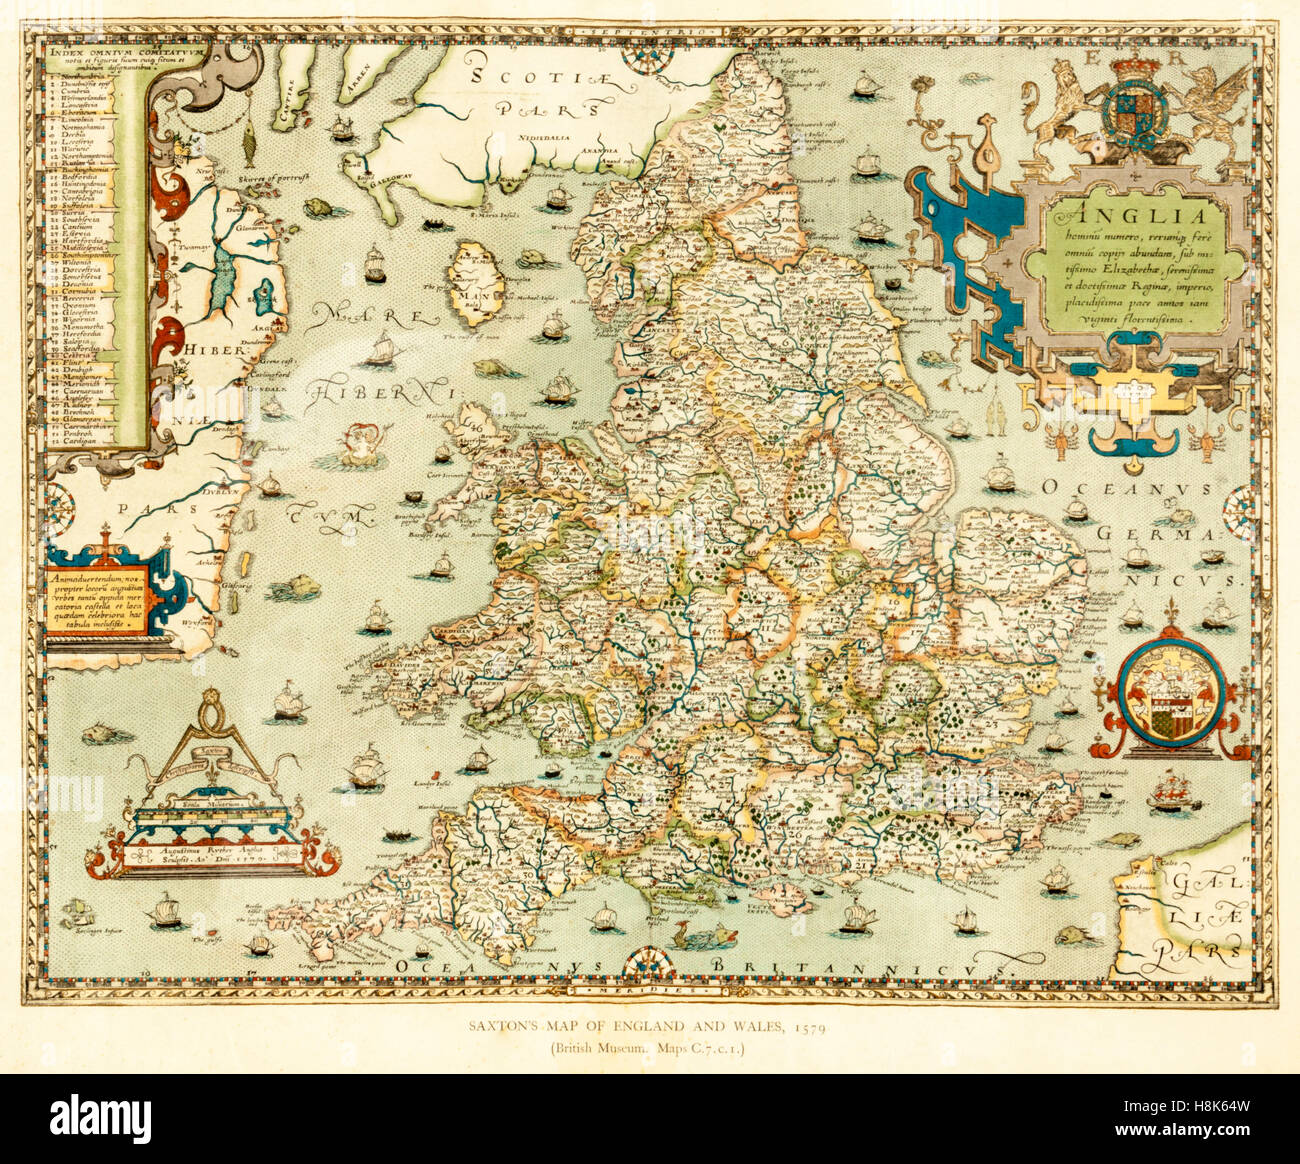 Christopher saxtons map of england and wales 1579 part of christopher saxtons map of england and wales 1579 part of atlas of the counties of england and wales gumiabroncs Image collections